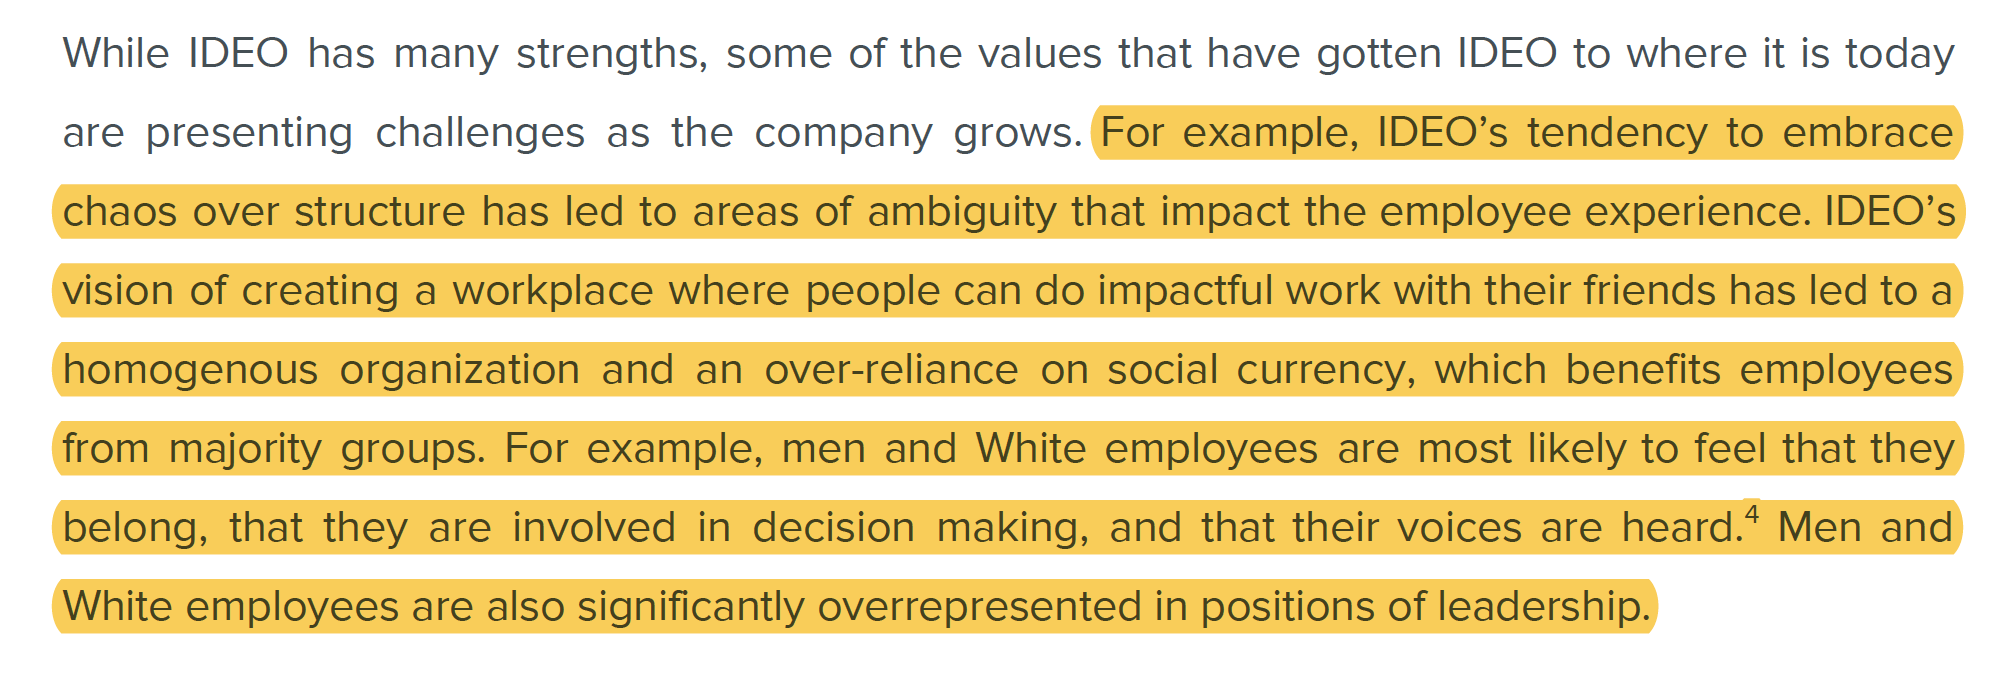 For example, IDEO's tendency to embrace chaos over structure has led to areas of ambiguity that impact the employee experience. IDEO's vision of creating a workplace where people can do impactful work with their friends has led to a homogenous organization and an over-reliance on social currency, which benefits employees from majority groups. For example, men and White employees are most likely to feel that they belong, that they are involved in decision-making, and that their voices are heard.